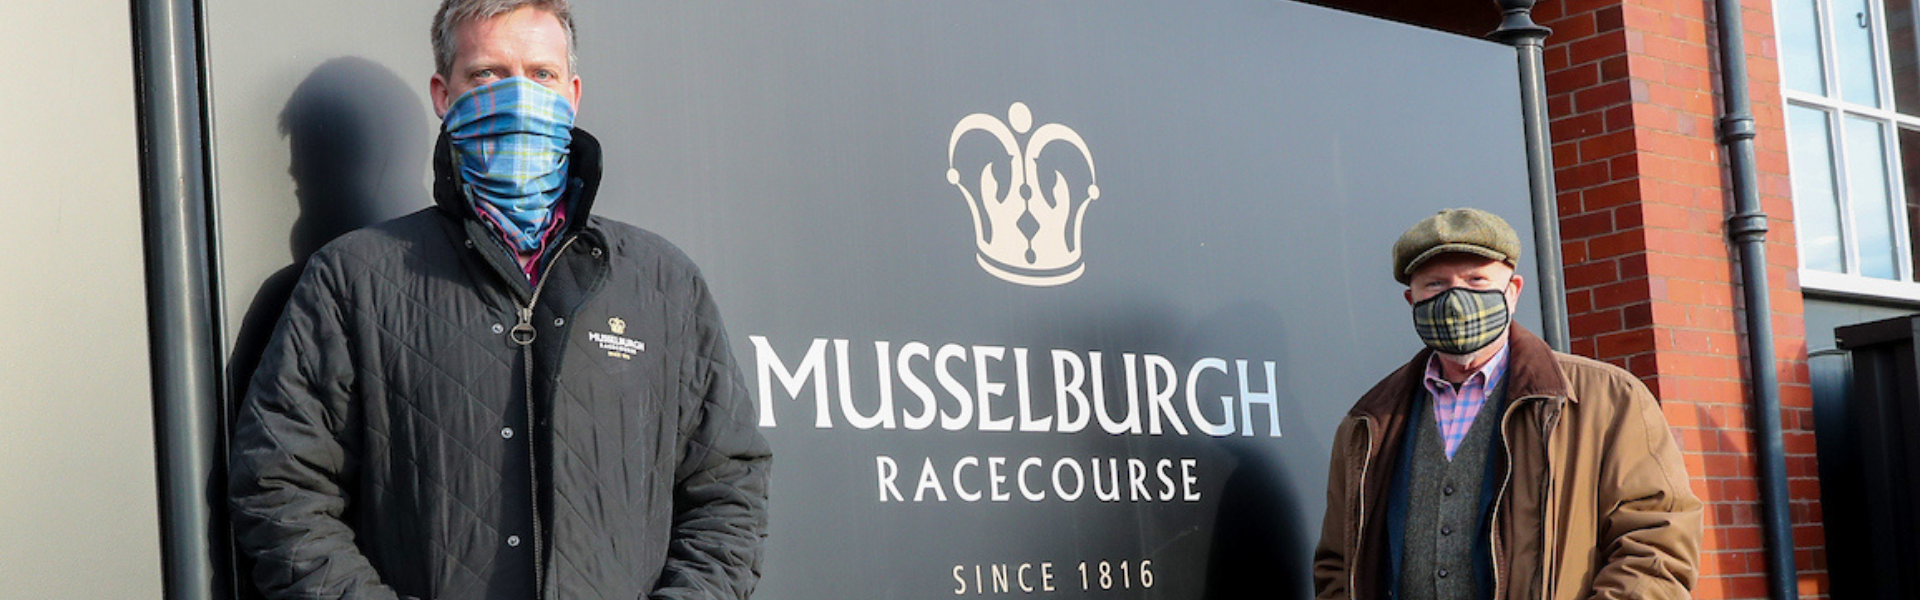 MSP encouraged by Musselburgh Racecourse's Covid-19 safety measures